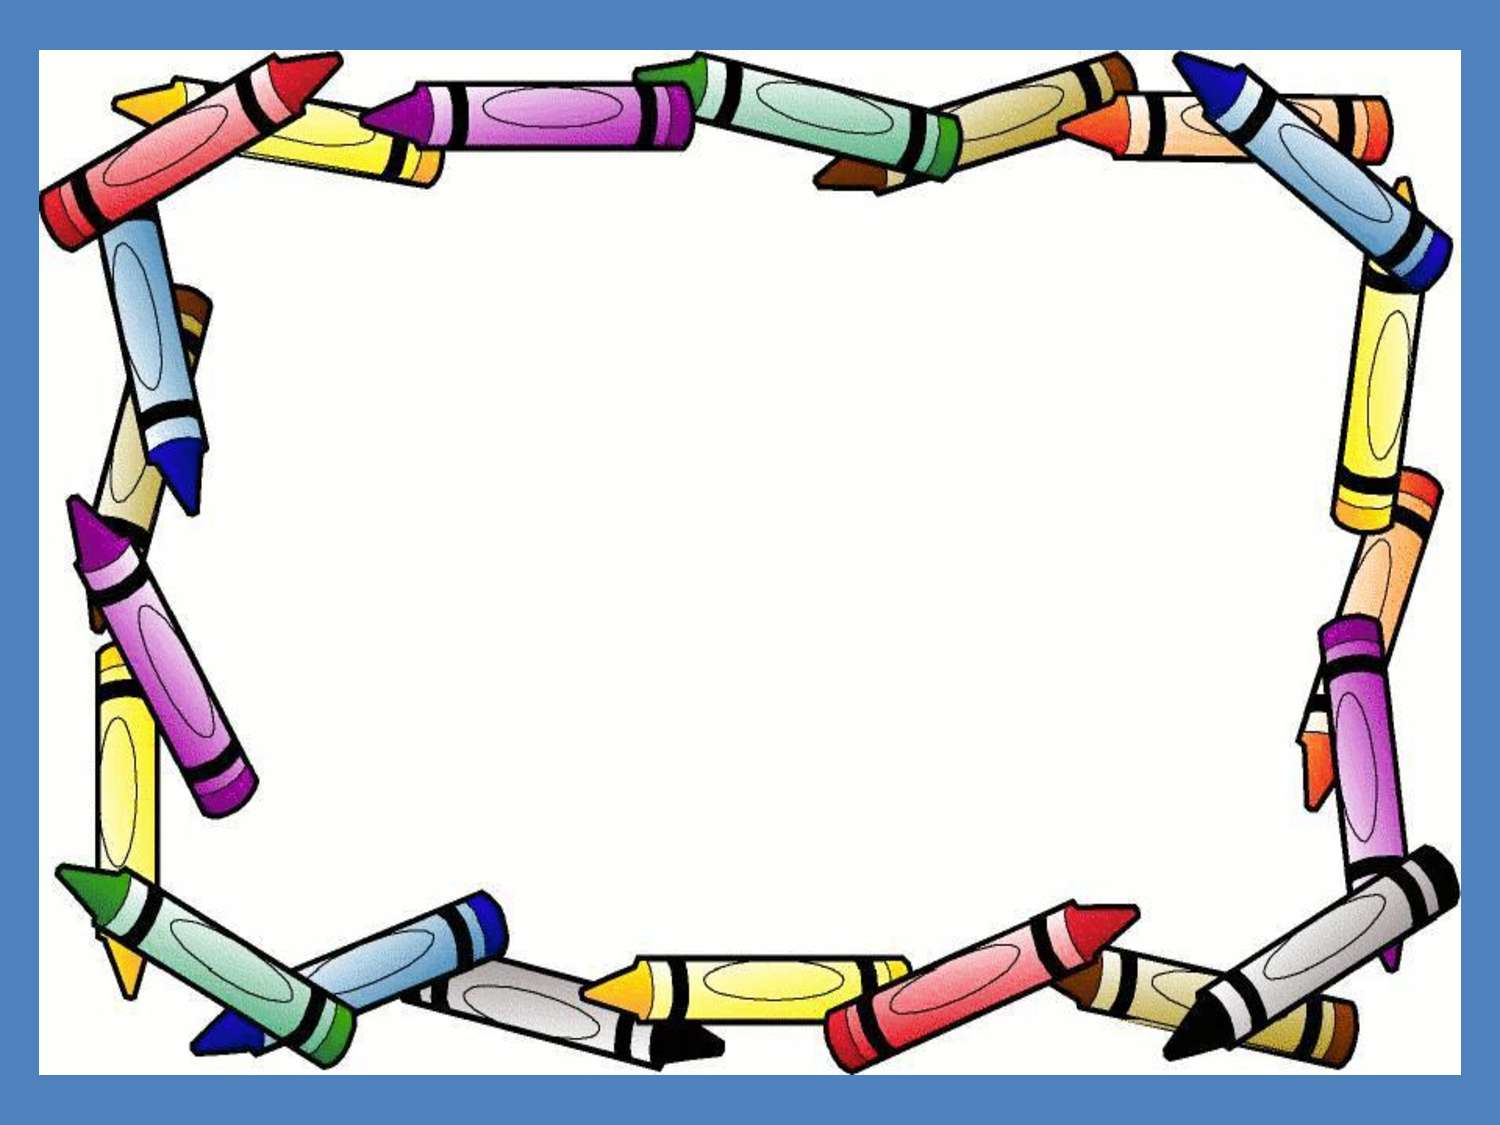 School Clipart Free Borders Clipart Pand-School Clipart Free Borders Clipart Panda Free Clipart Images-18